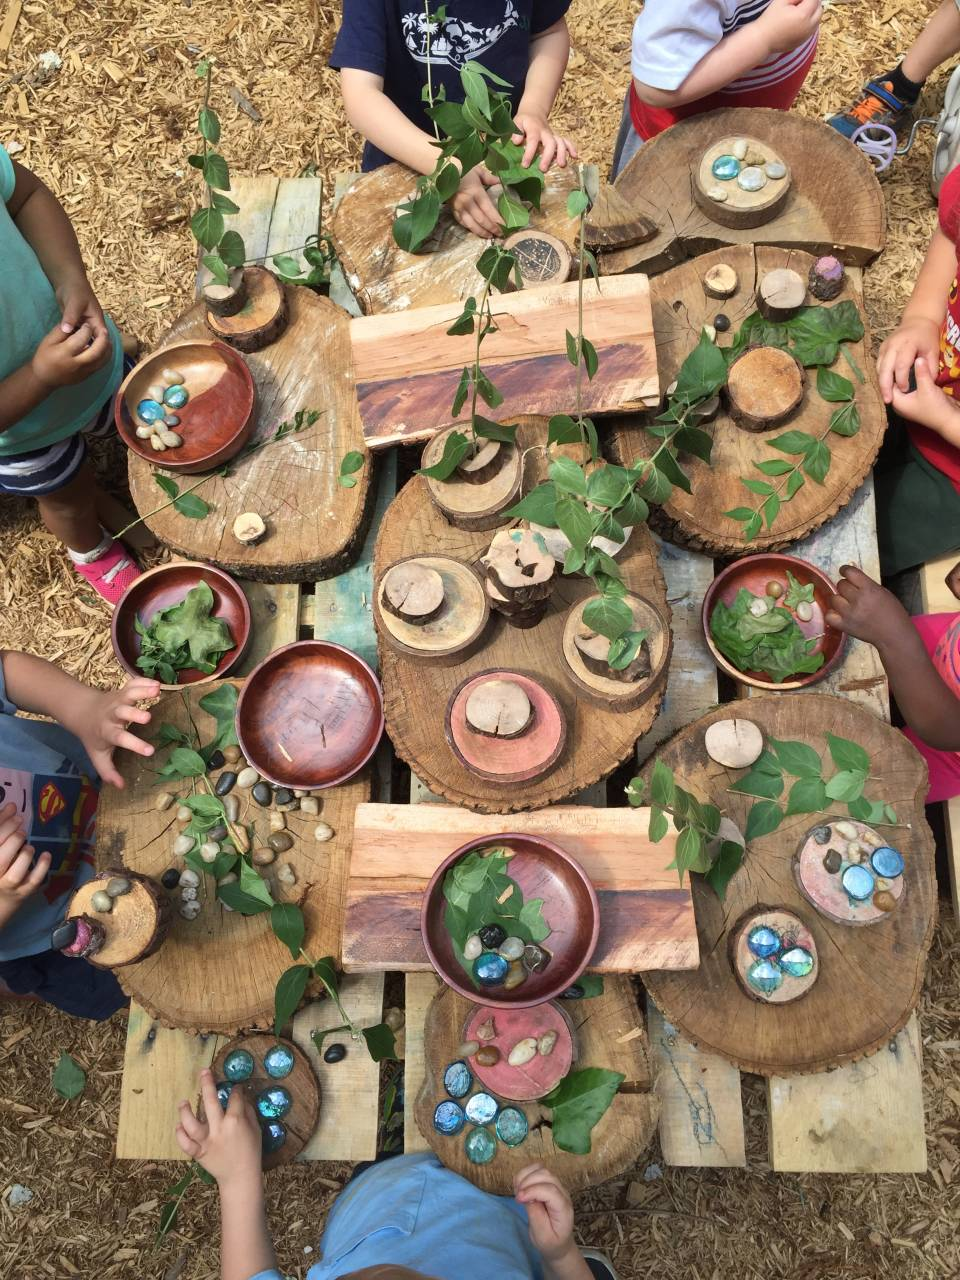 Picture Source; Willow School: Provocations on the Playground